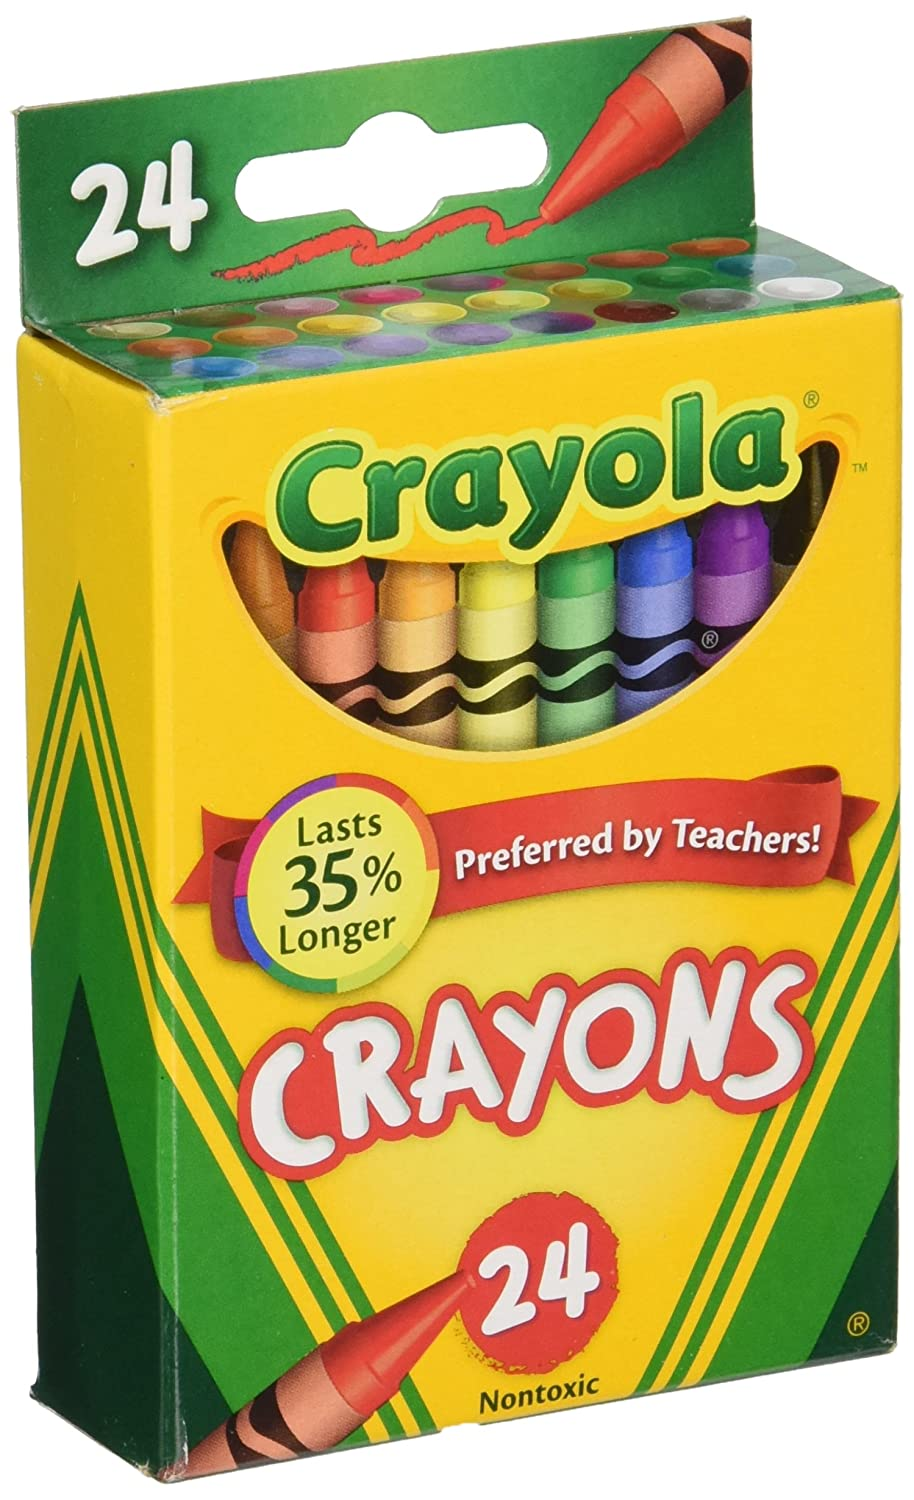 Top 20 Best Crayon Sets For Kids Reviews 2018 2019 On